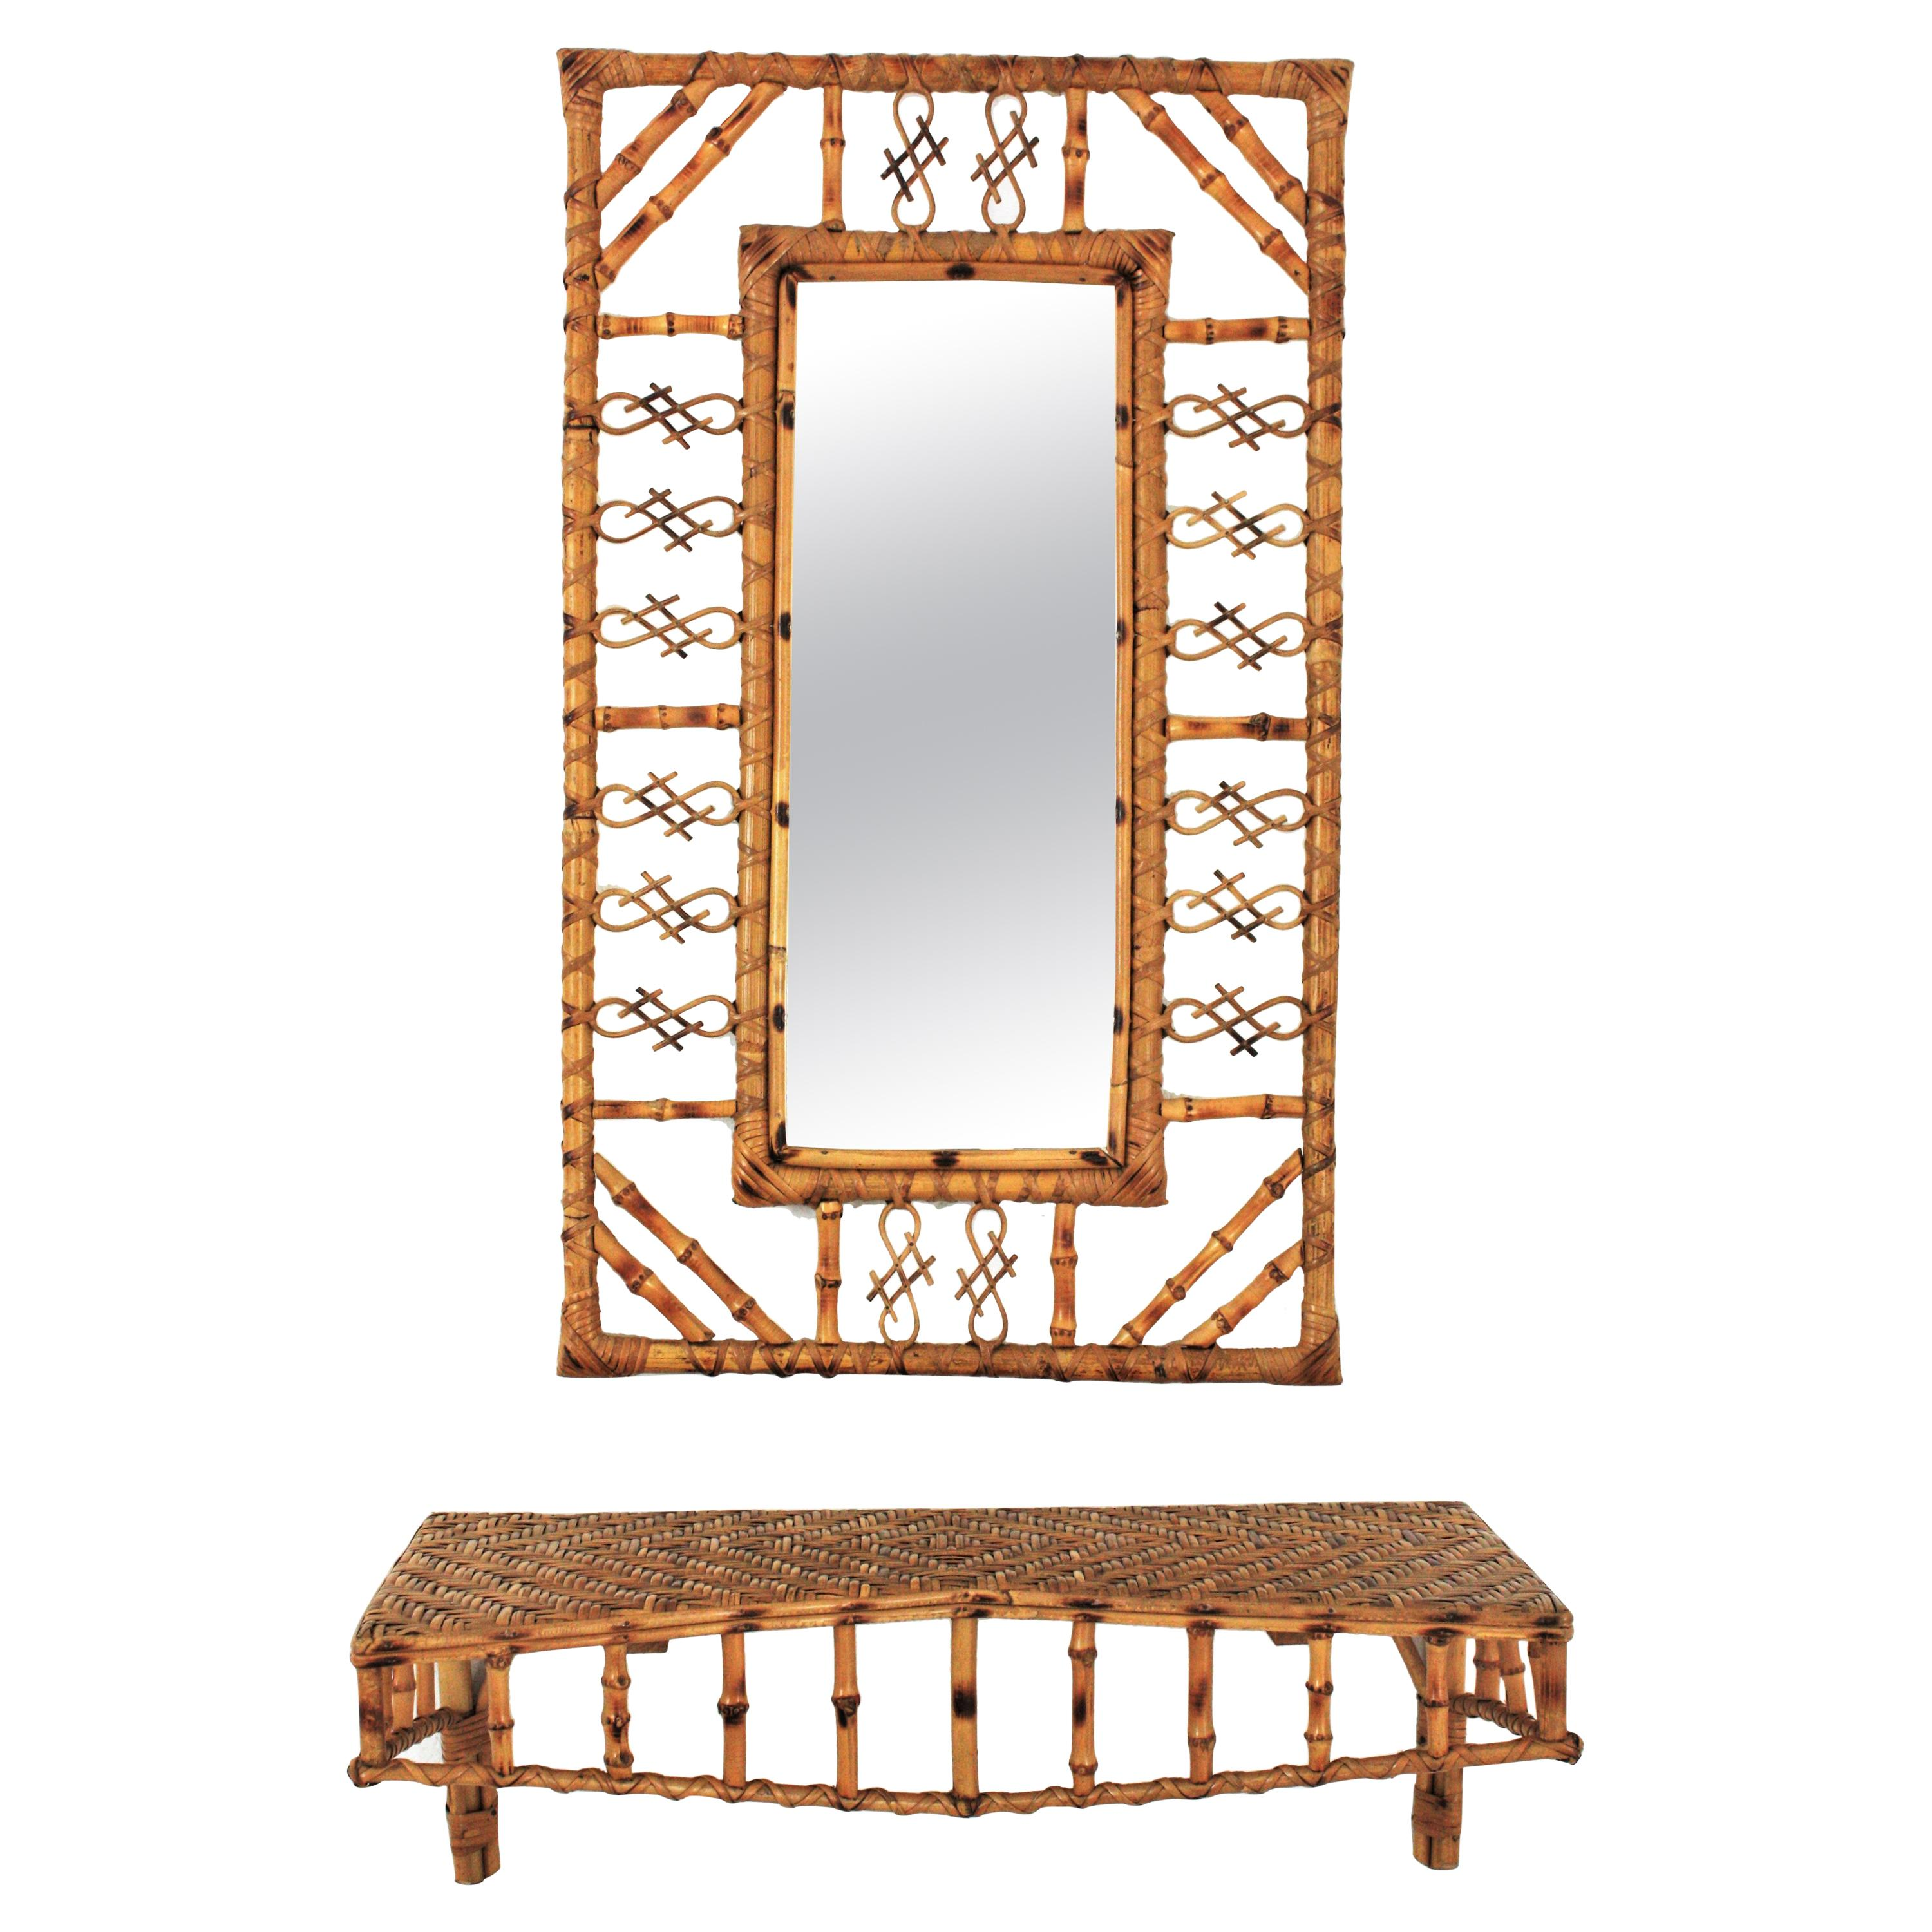 Set of Rattan and Bamboo Mirror with Wall Shelf Console Table, France, 1950s